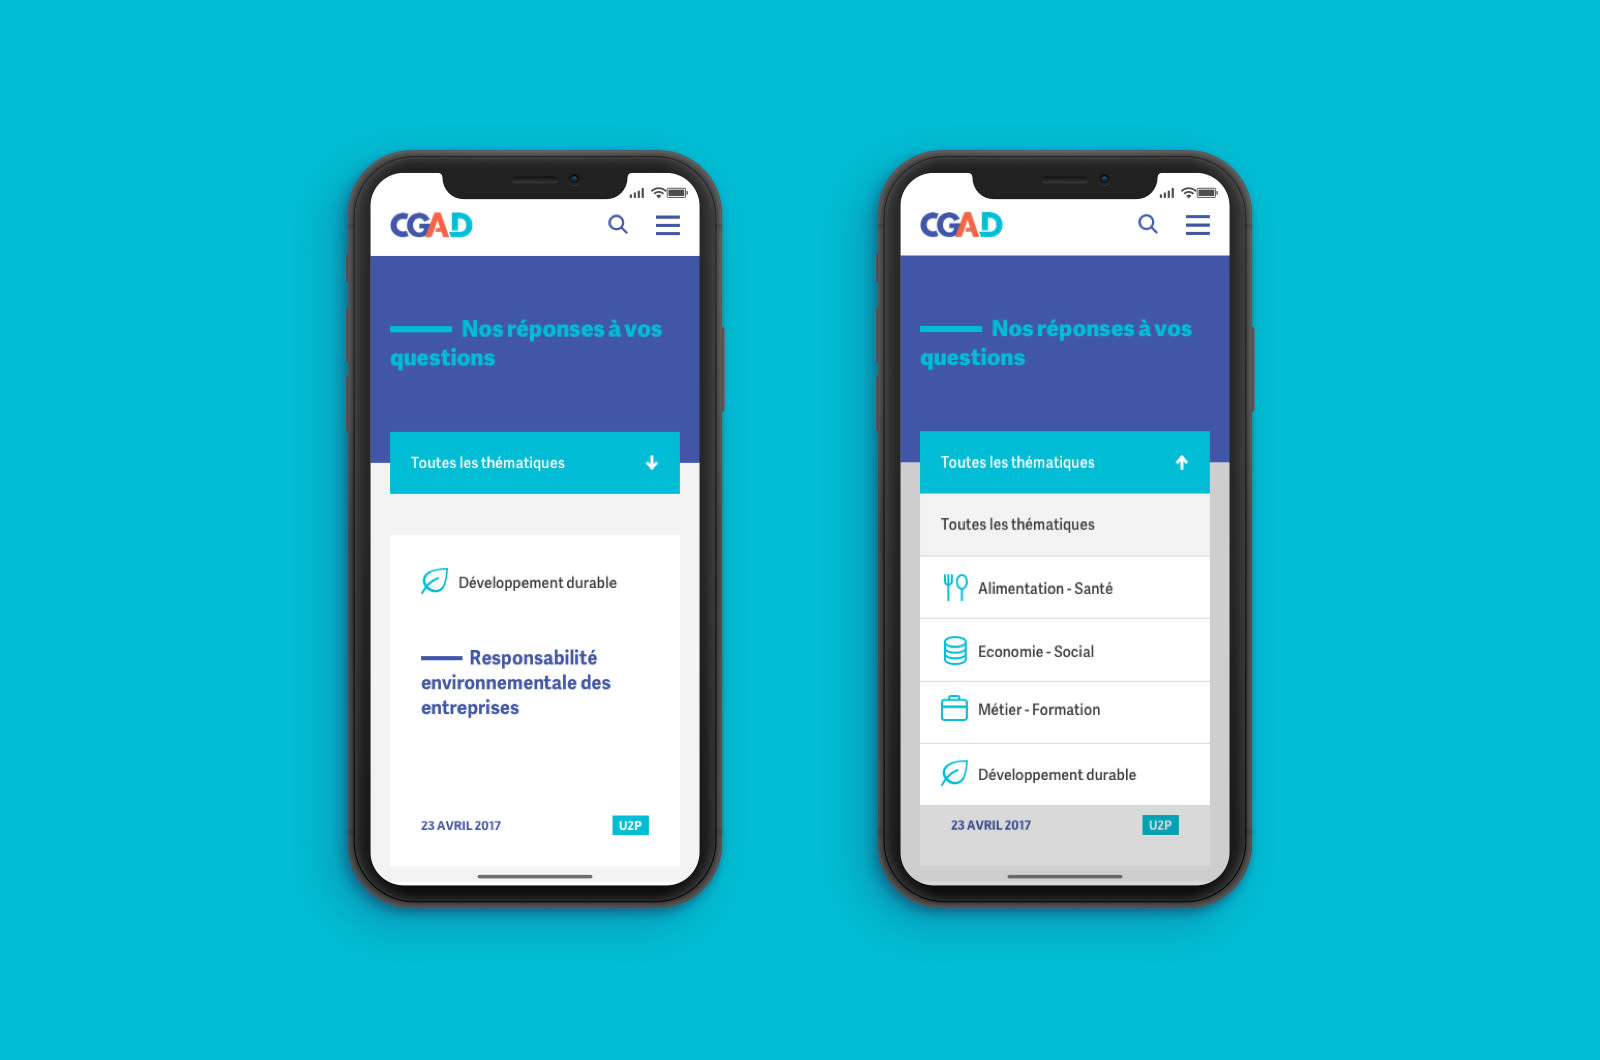 cgad dossiers mobile